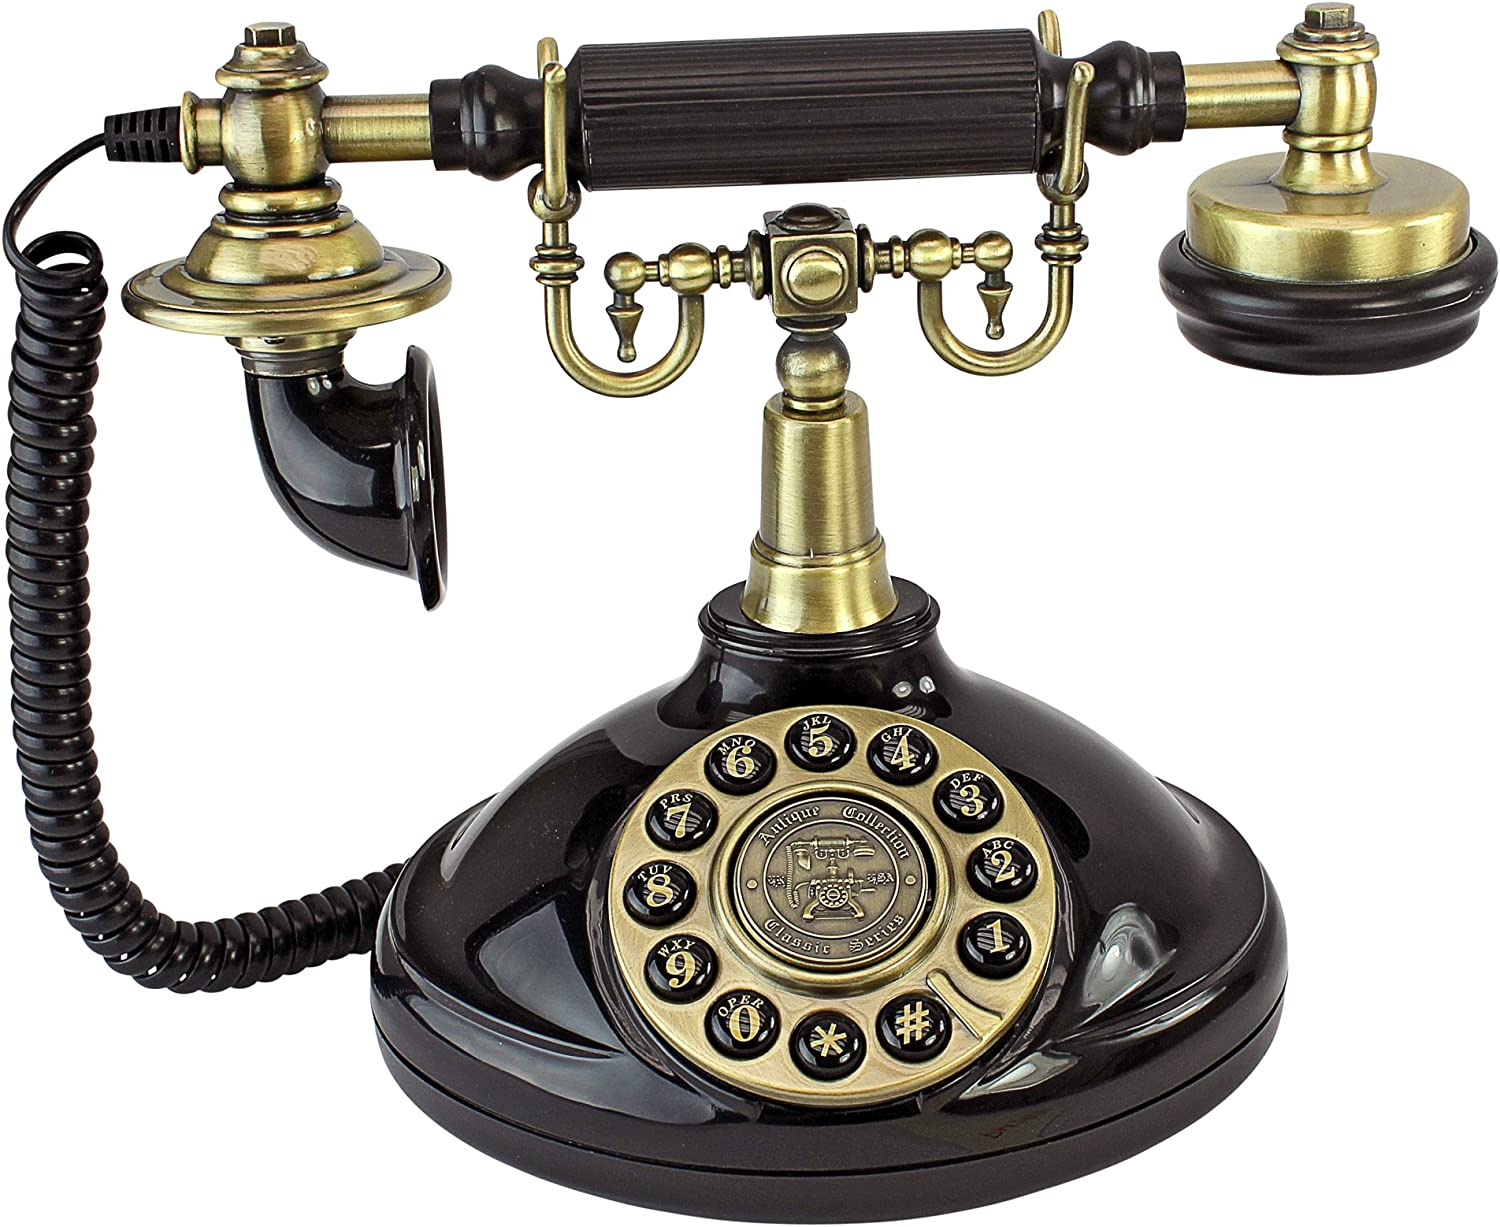 Design Toscano PM1920 Antique Brittany Neophone 1929 Rotary Corded Retro Phone - Vintage Decorative Telephones, Black